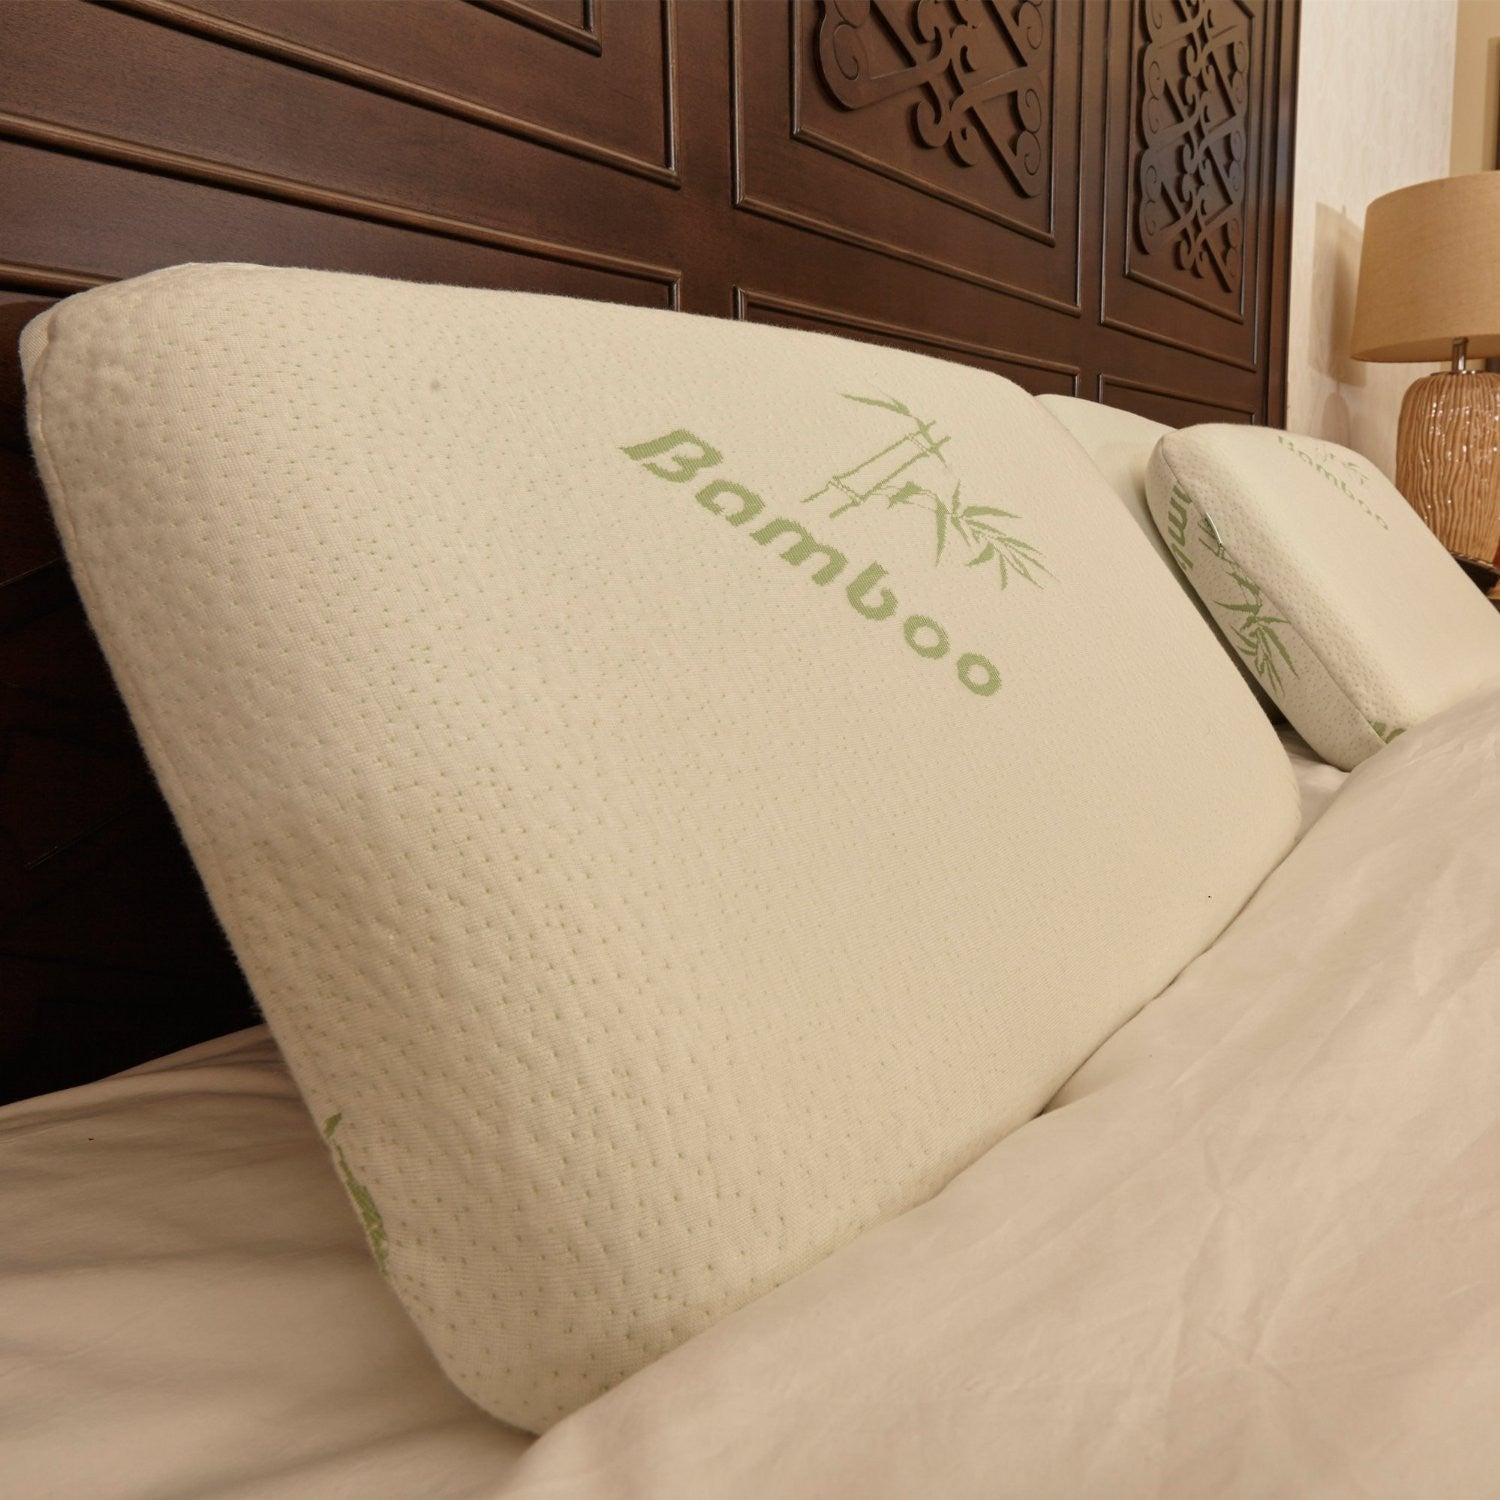 amp king comforter mattresses more hotel bamboo of shop queen pillow comfortable comfort line